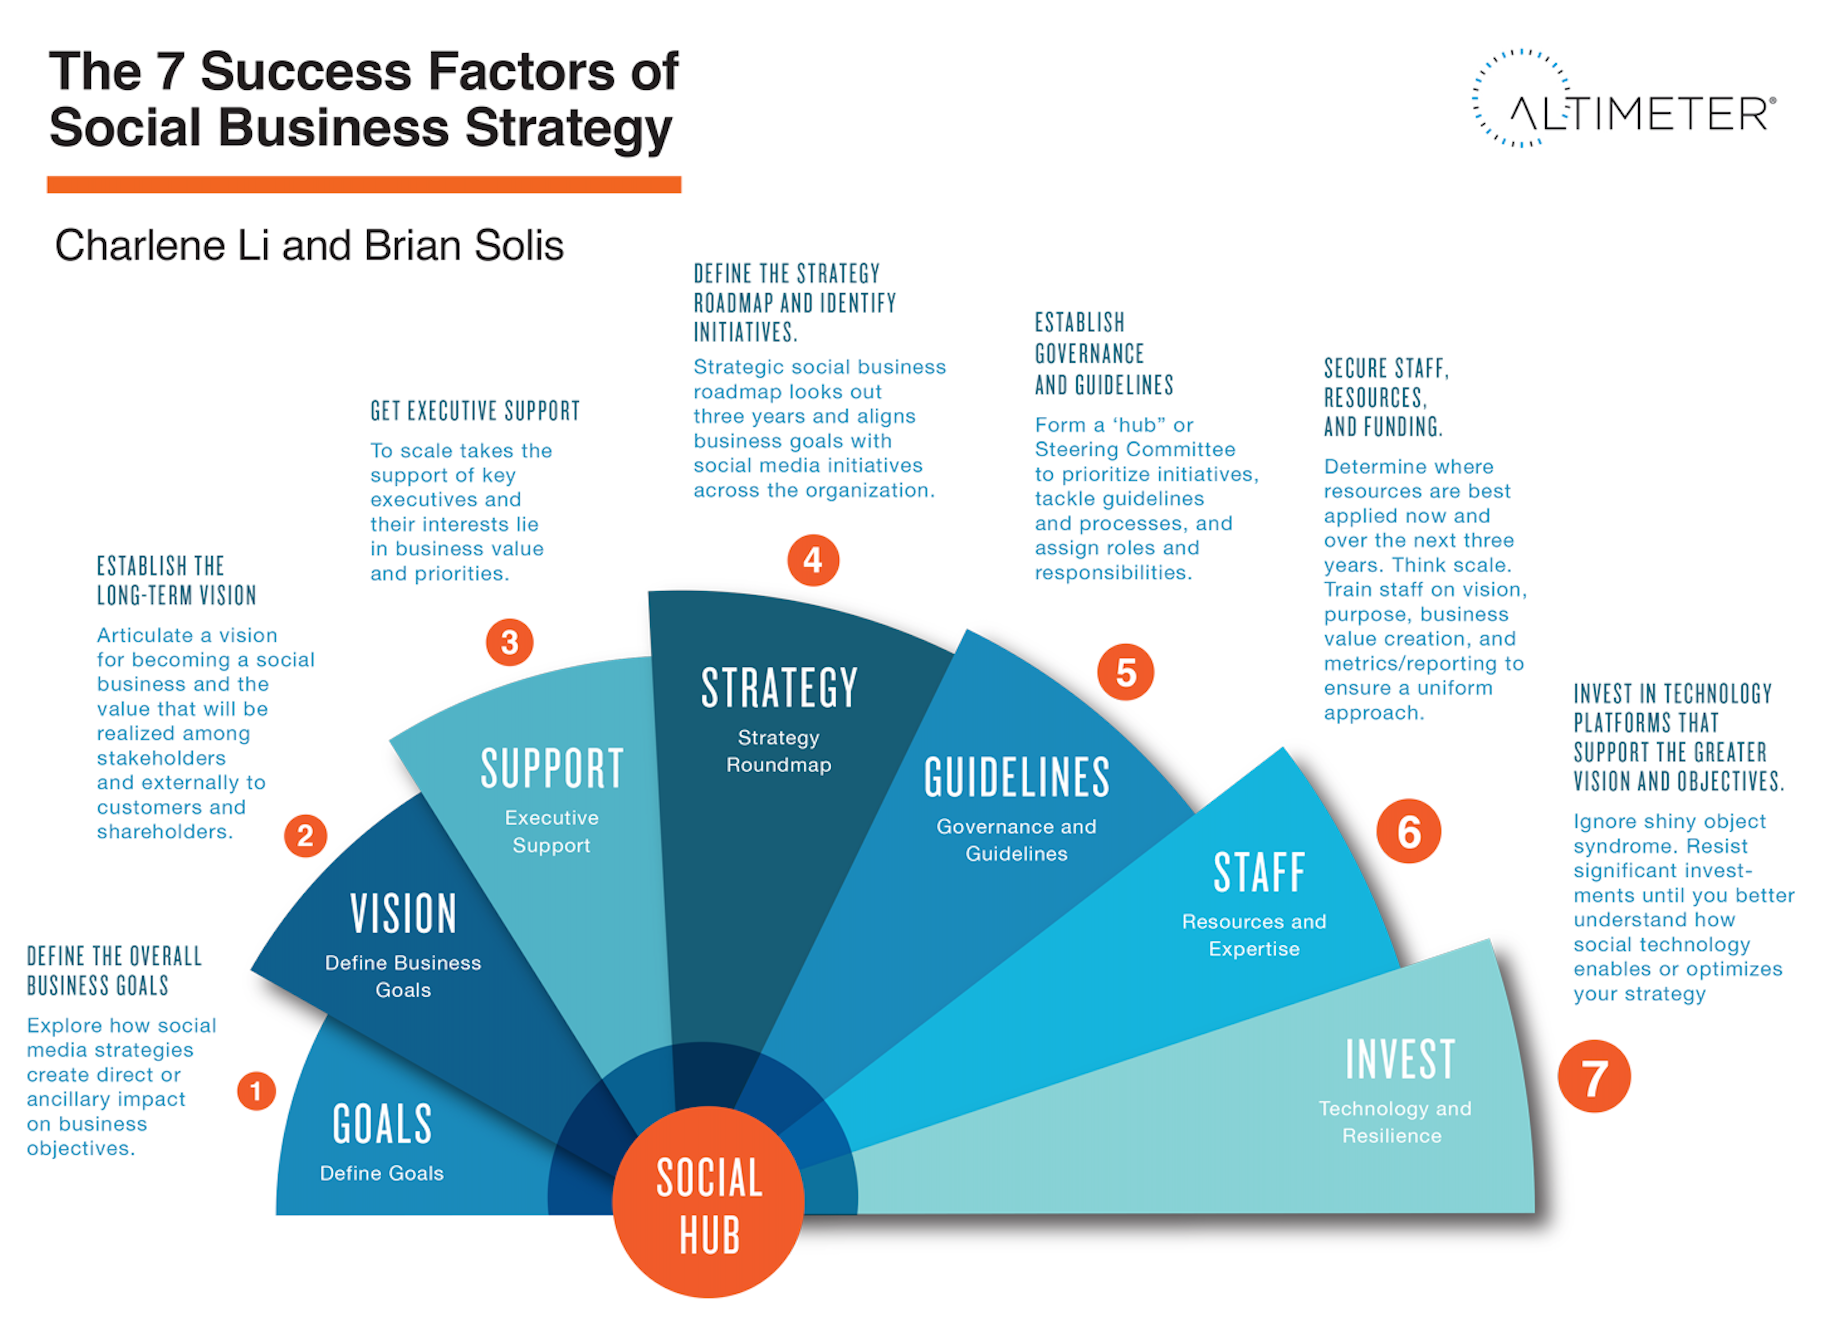 7 Success Factors For Social Business Strategy